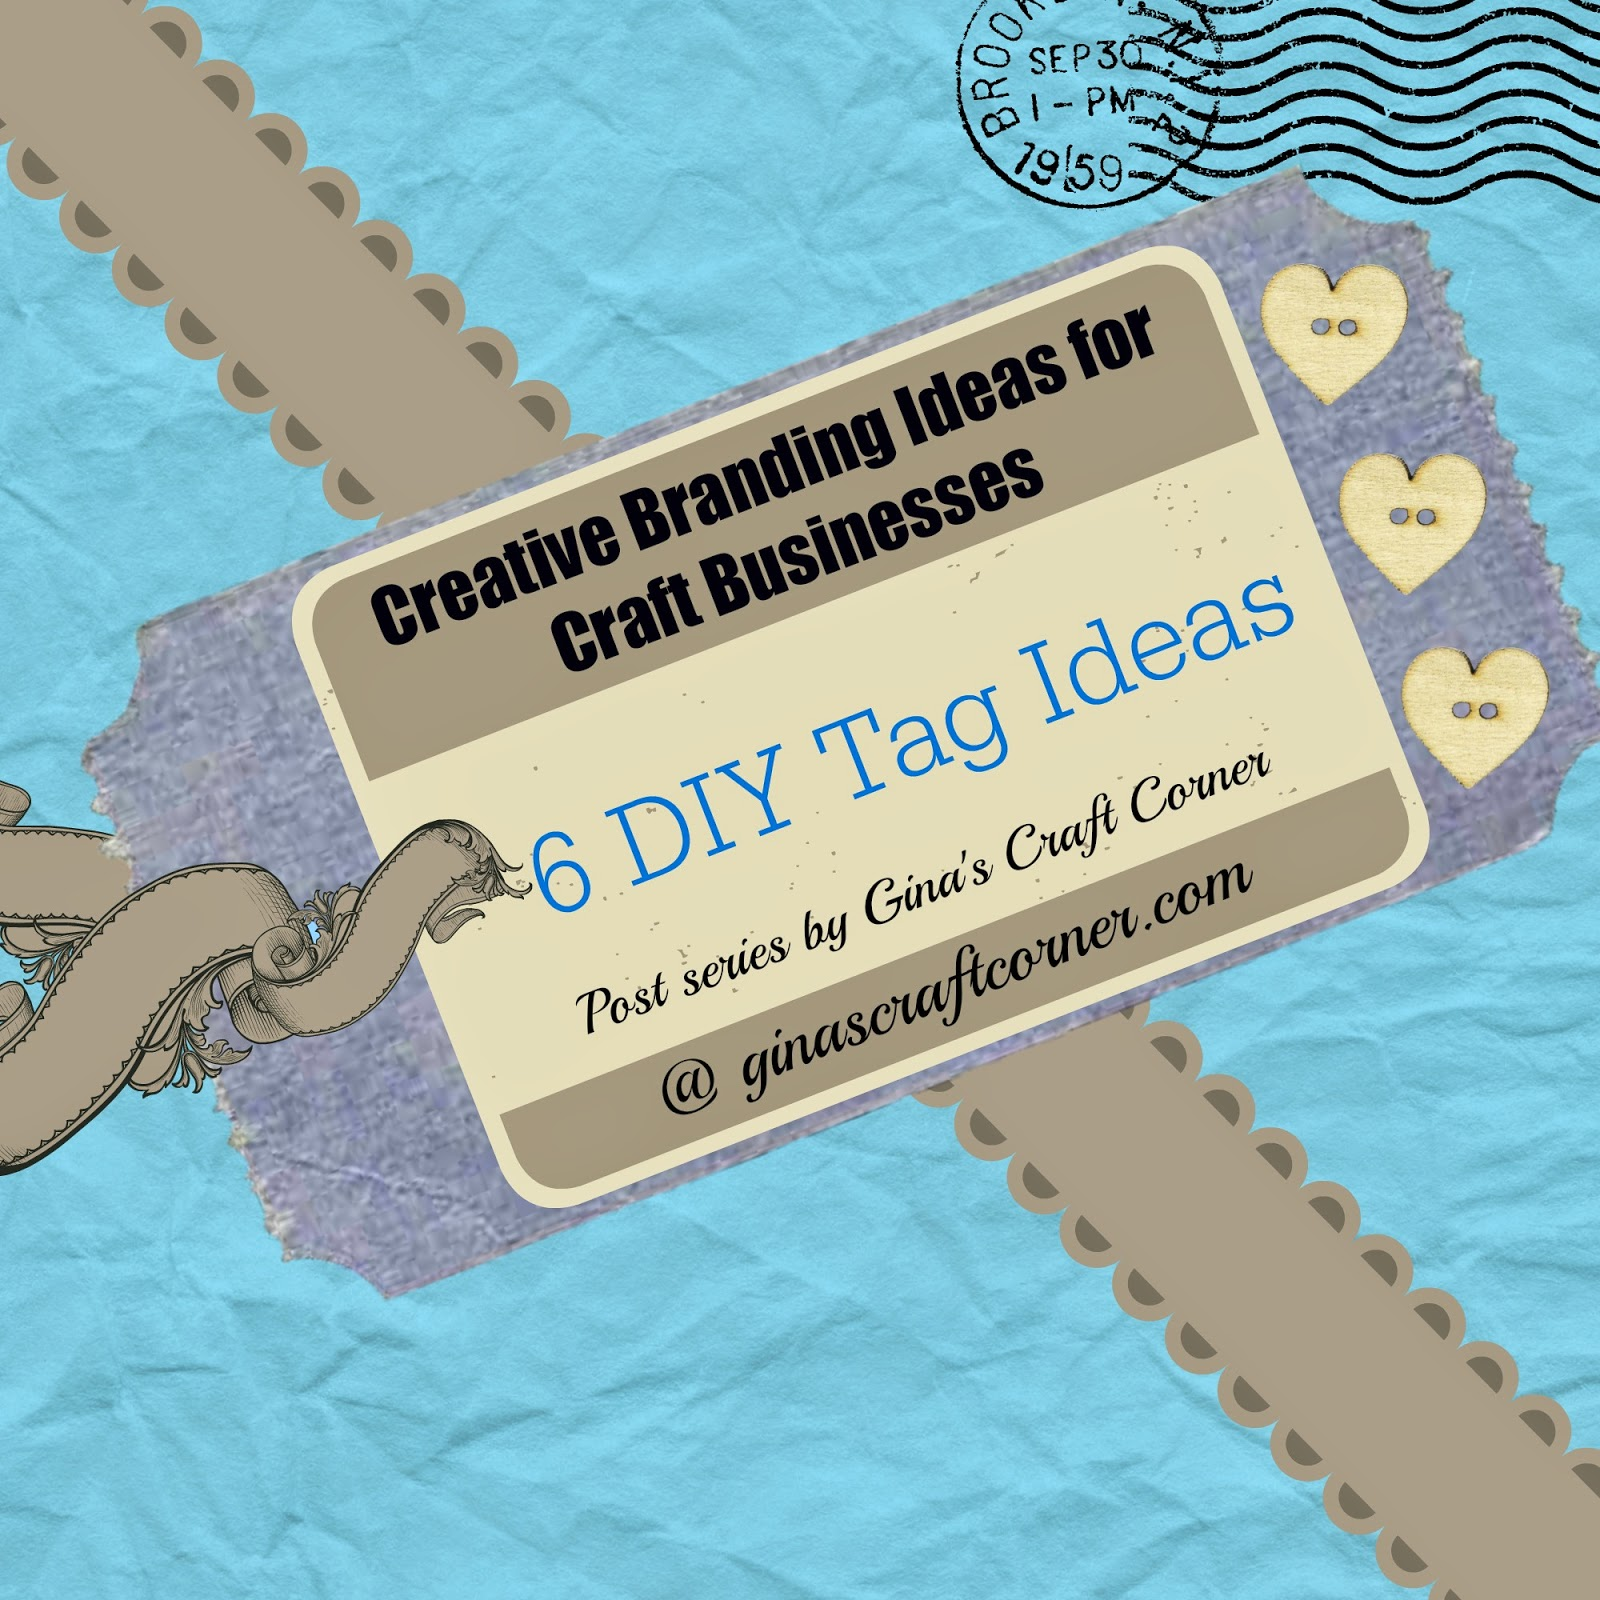 Creative Branding Ideas for your Business-DIY TAGS